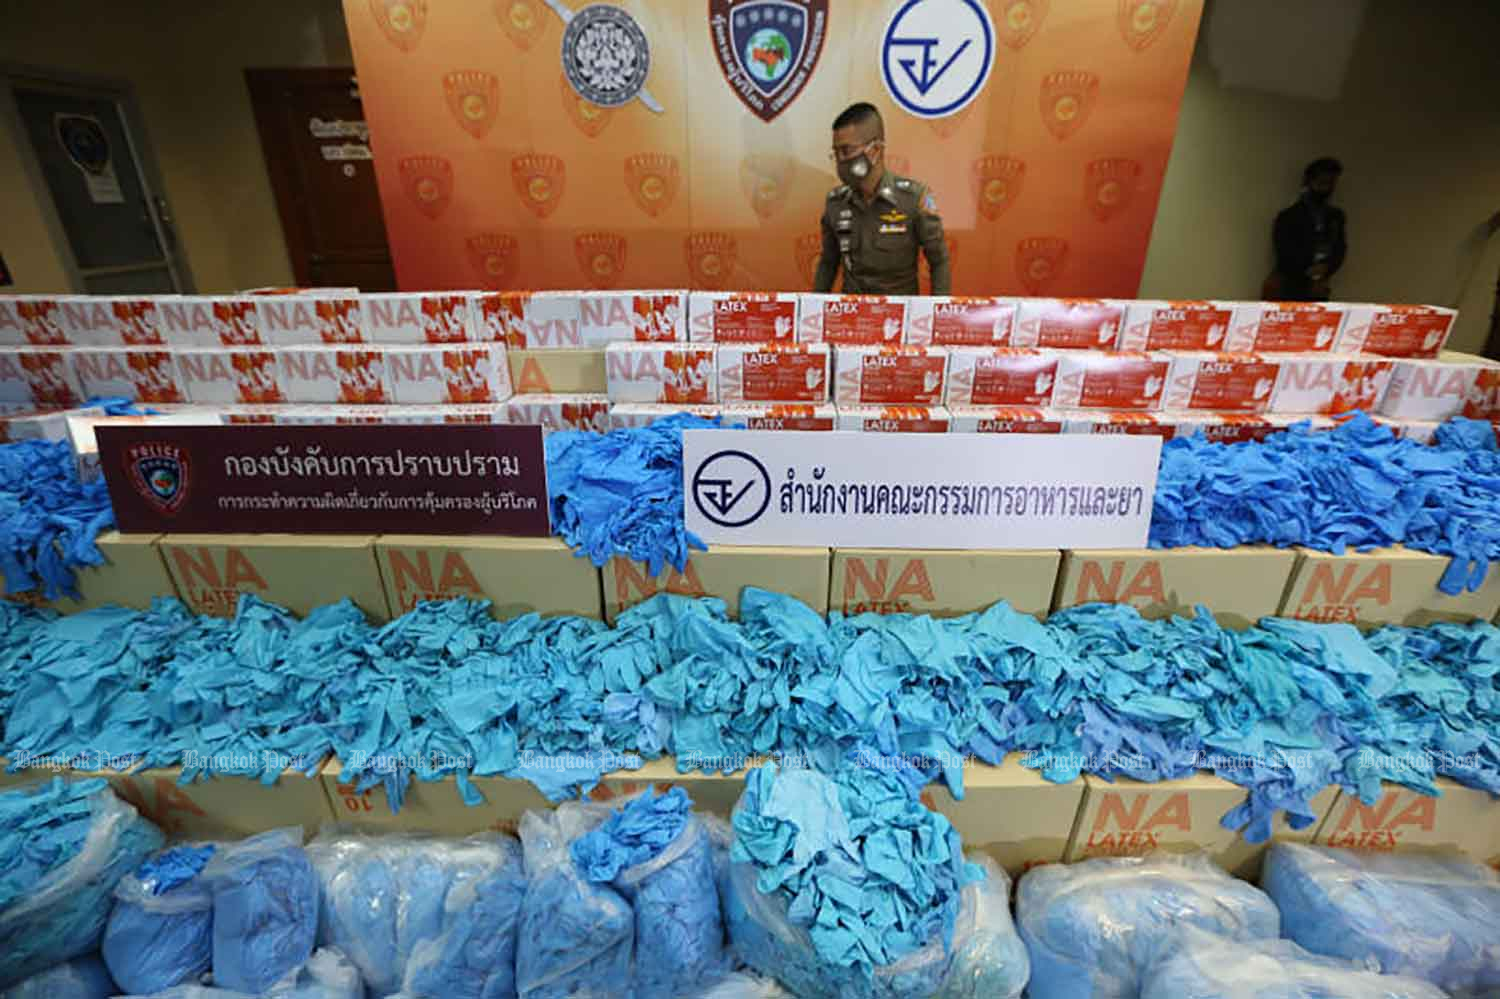 Thai company exports 'counterfeit medical gloves'